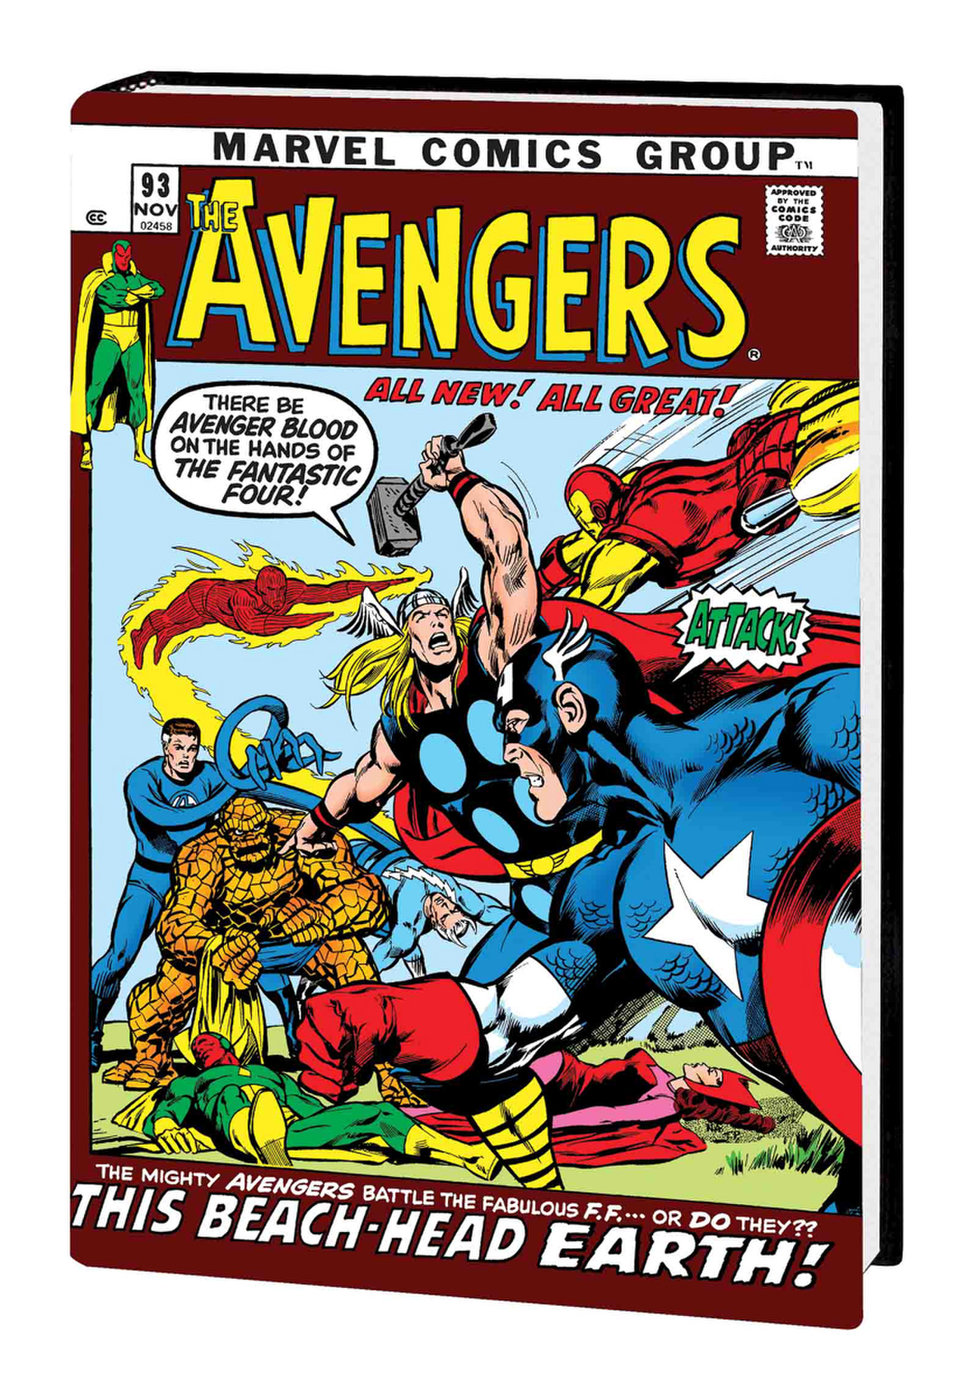 700 McGuinness 1:10 Variant STOCK PHOTO Marvel Comics 2018 Avengers #10